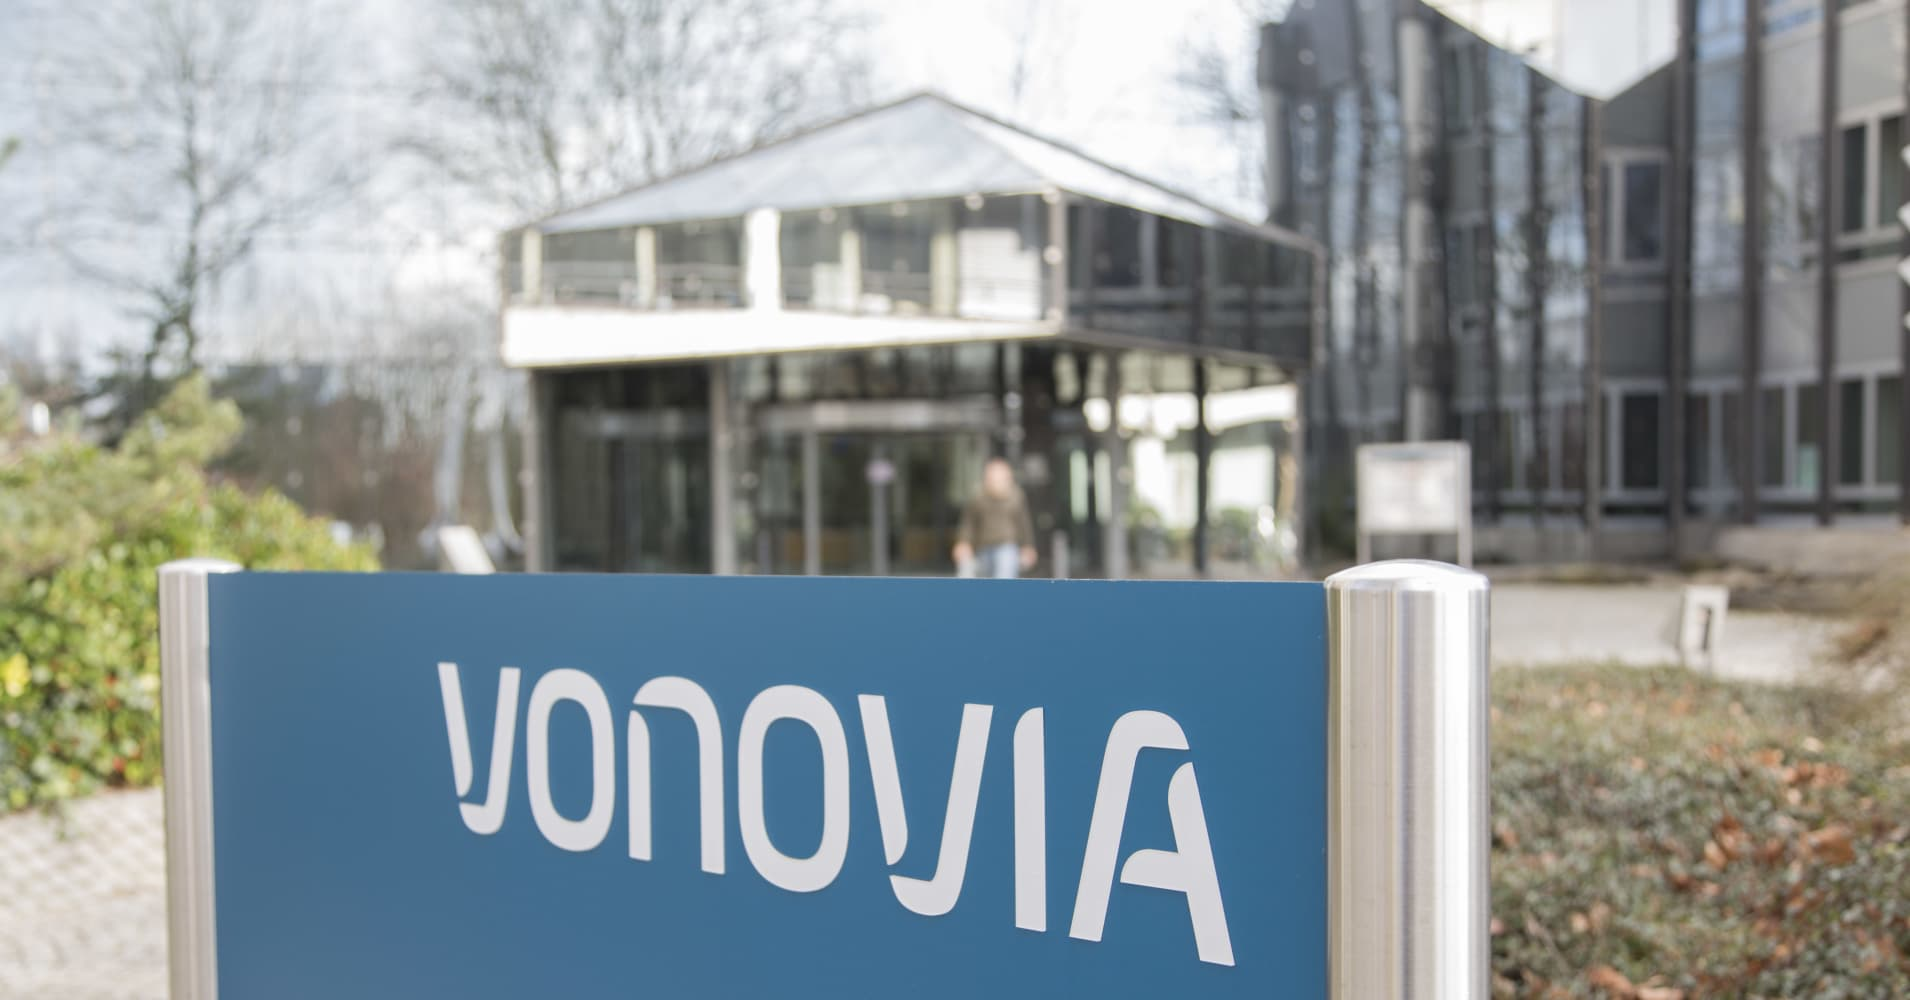 Buwog agrees to be taken over by Vonovia in $6.1 billion deal